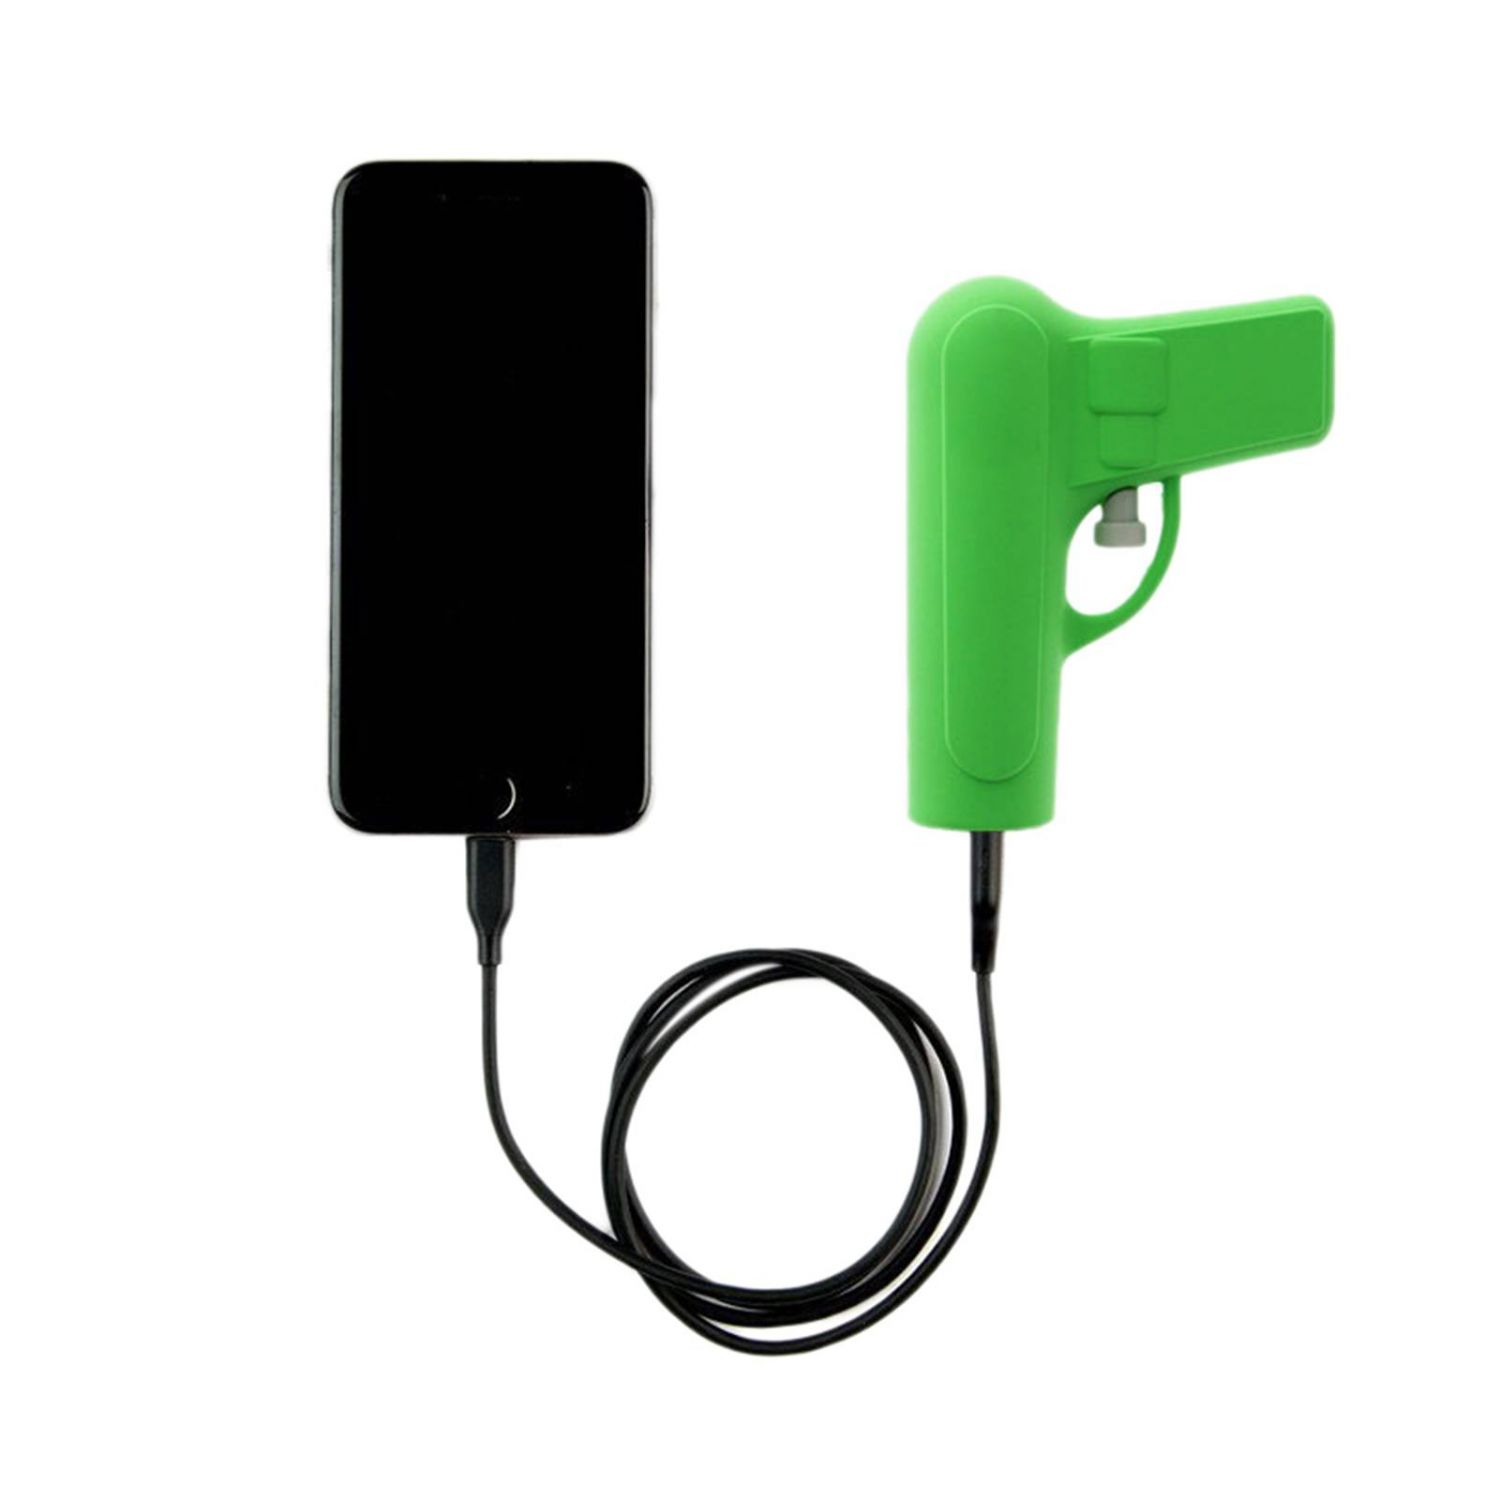 Batterie Moji Power: Batterie homeware Moji Power vert 2